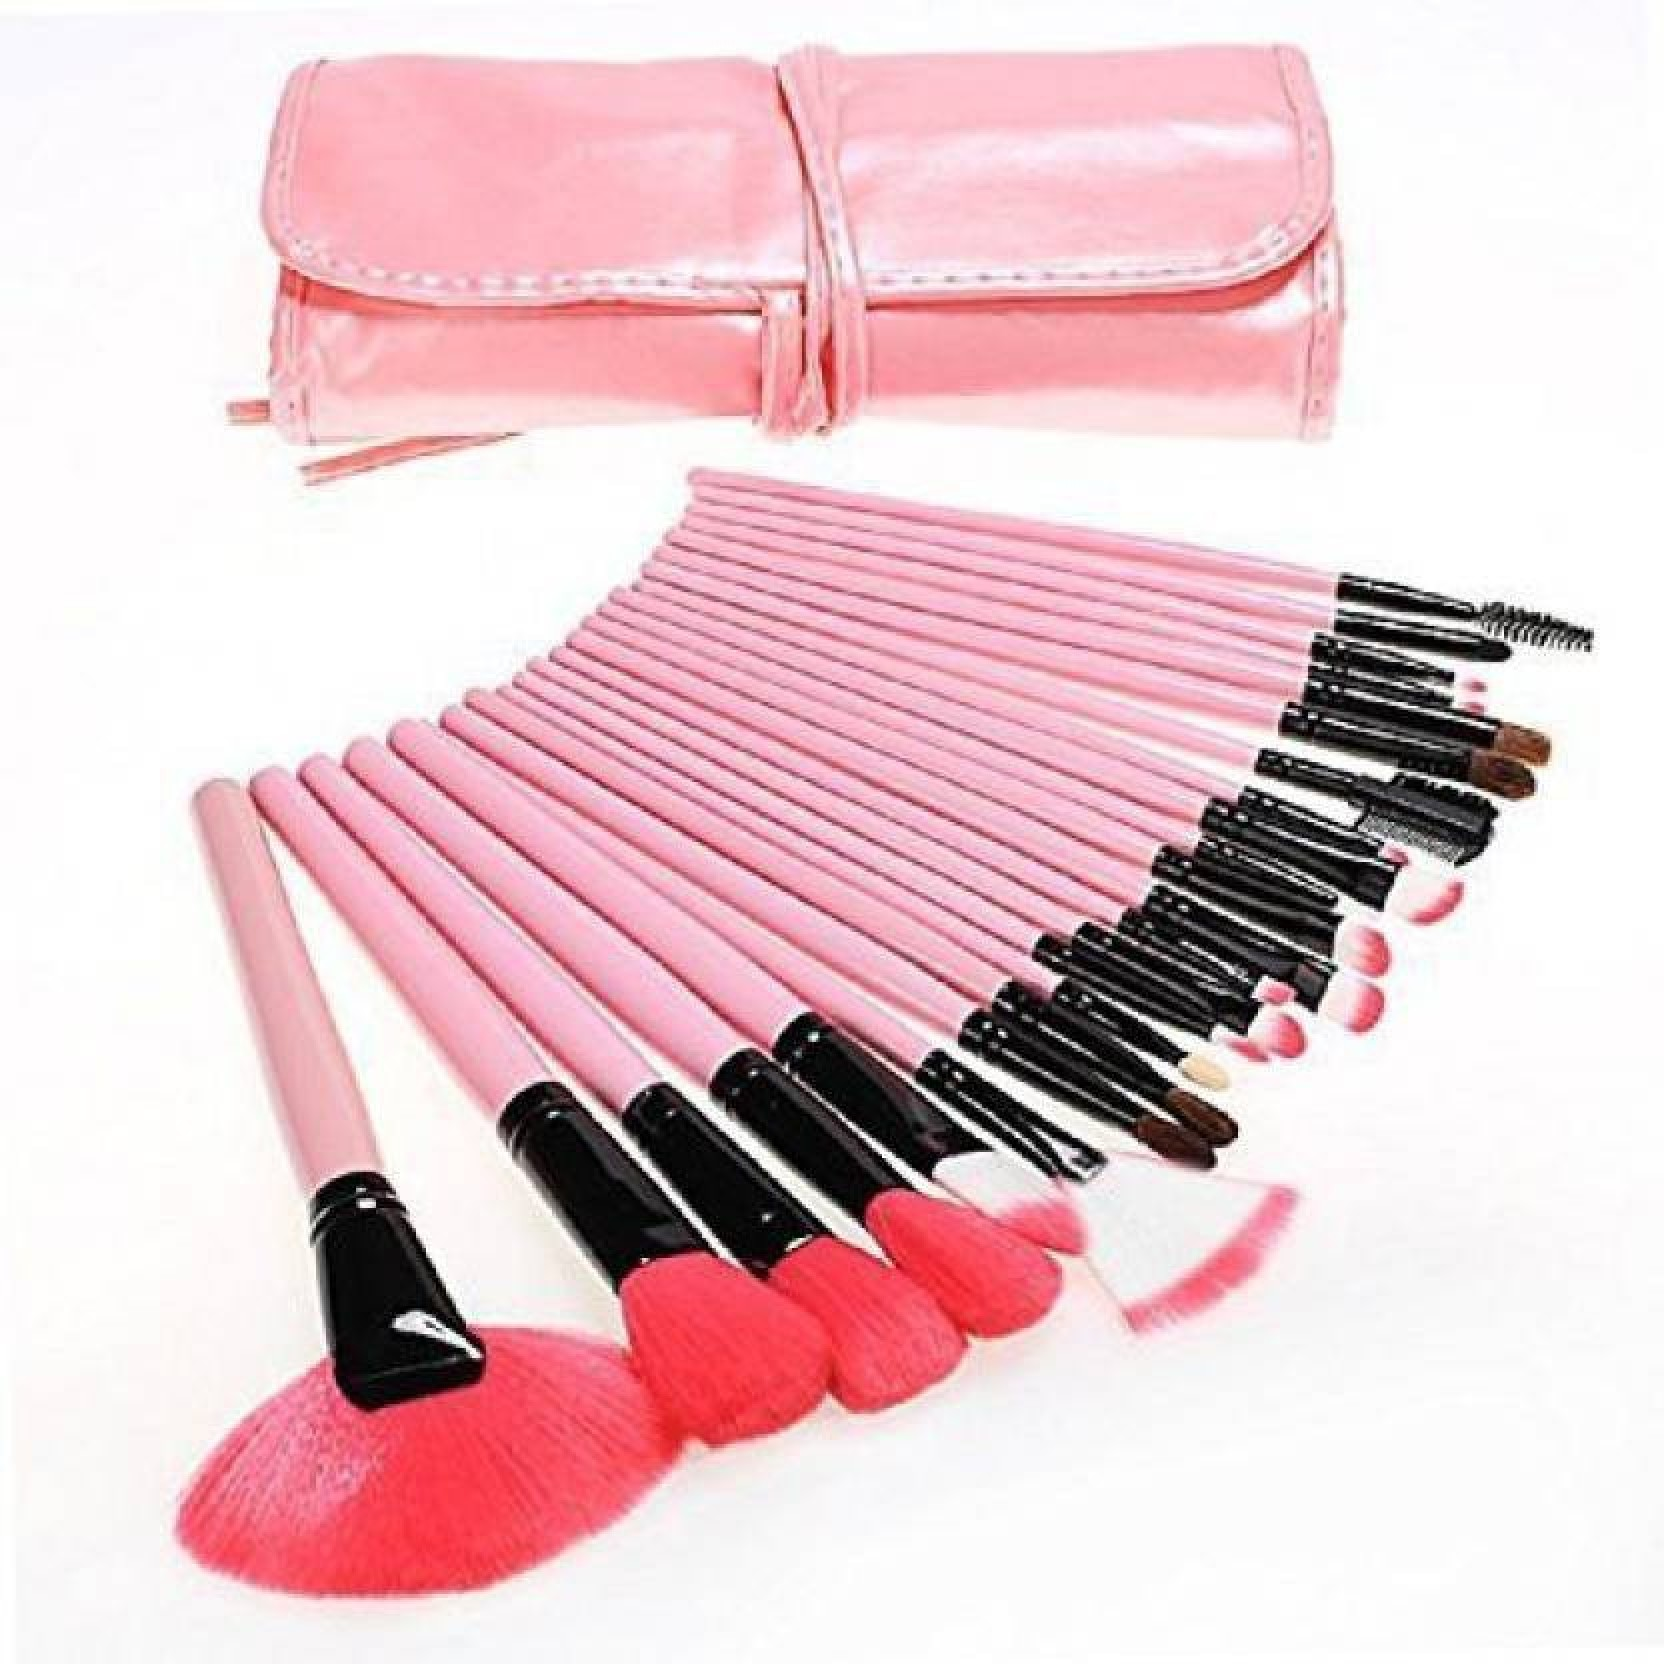 Skinplus 24 Pcs Professional Makeup Brushes Set Natural Cosmetic 36 Facial Wood Make Up Brush Tools Kit With Black Leather Case Pouch Share